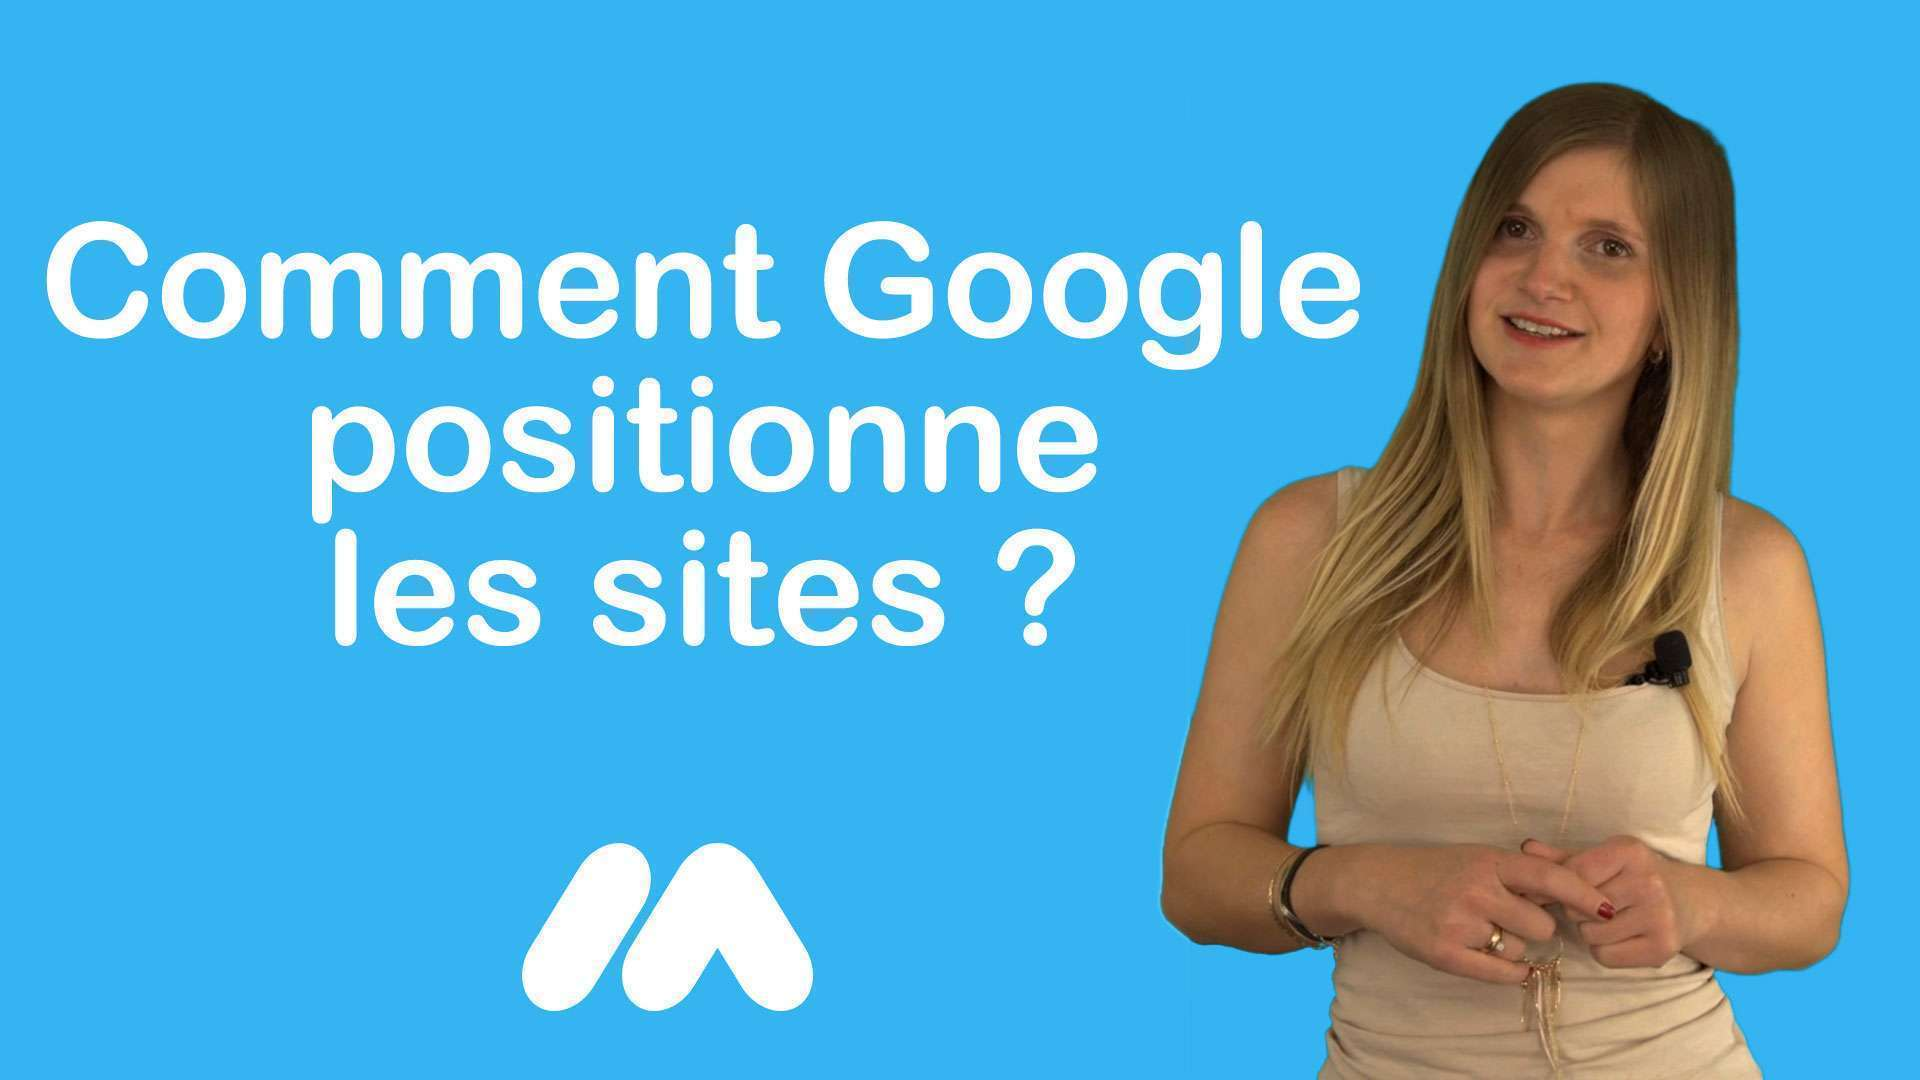 Comment Google positionne les sites ?- Tuto e-commerce & webmarketing – Market Academy